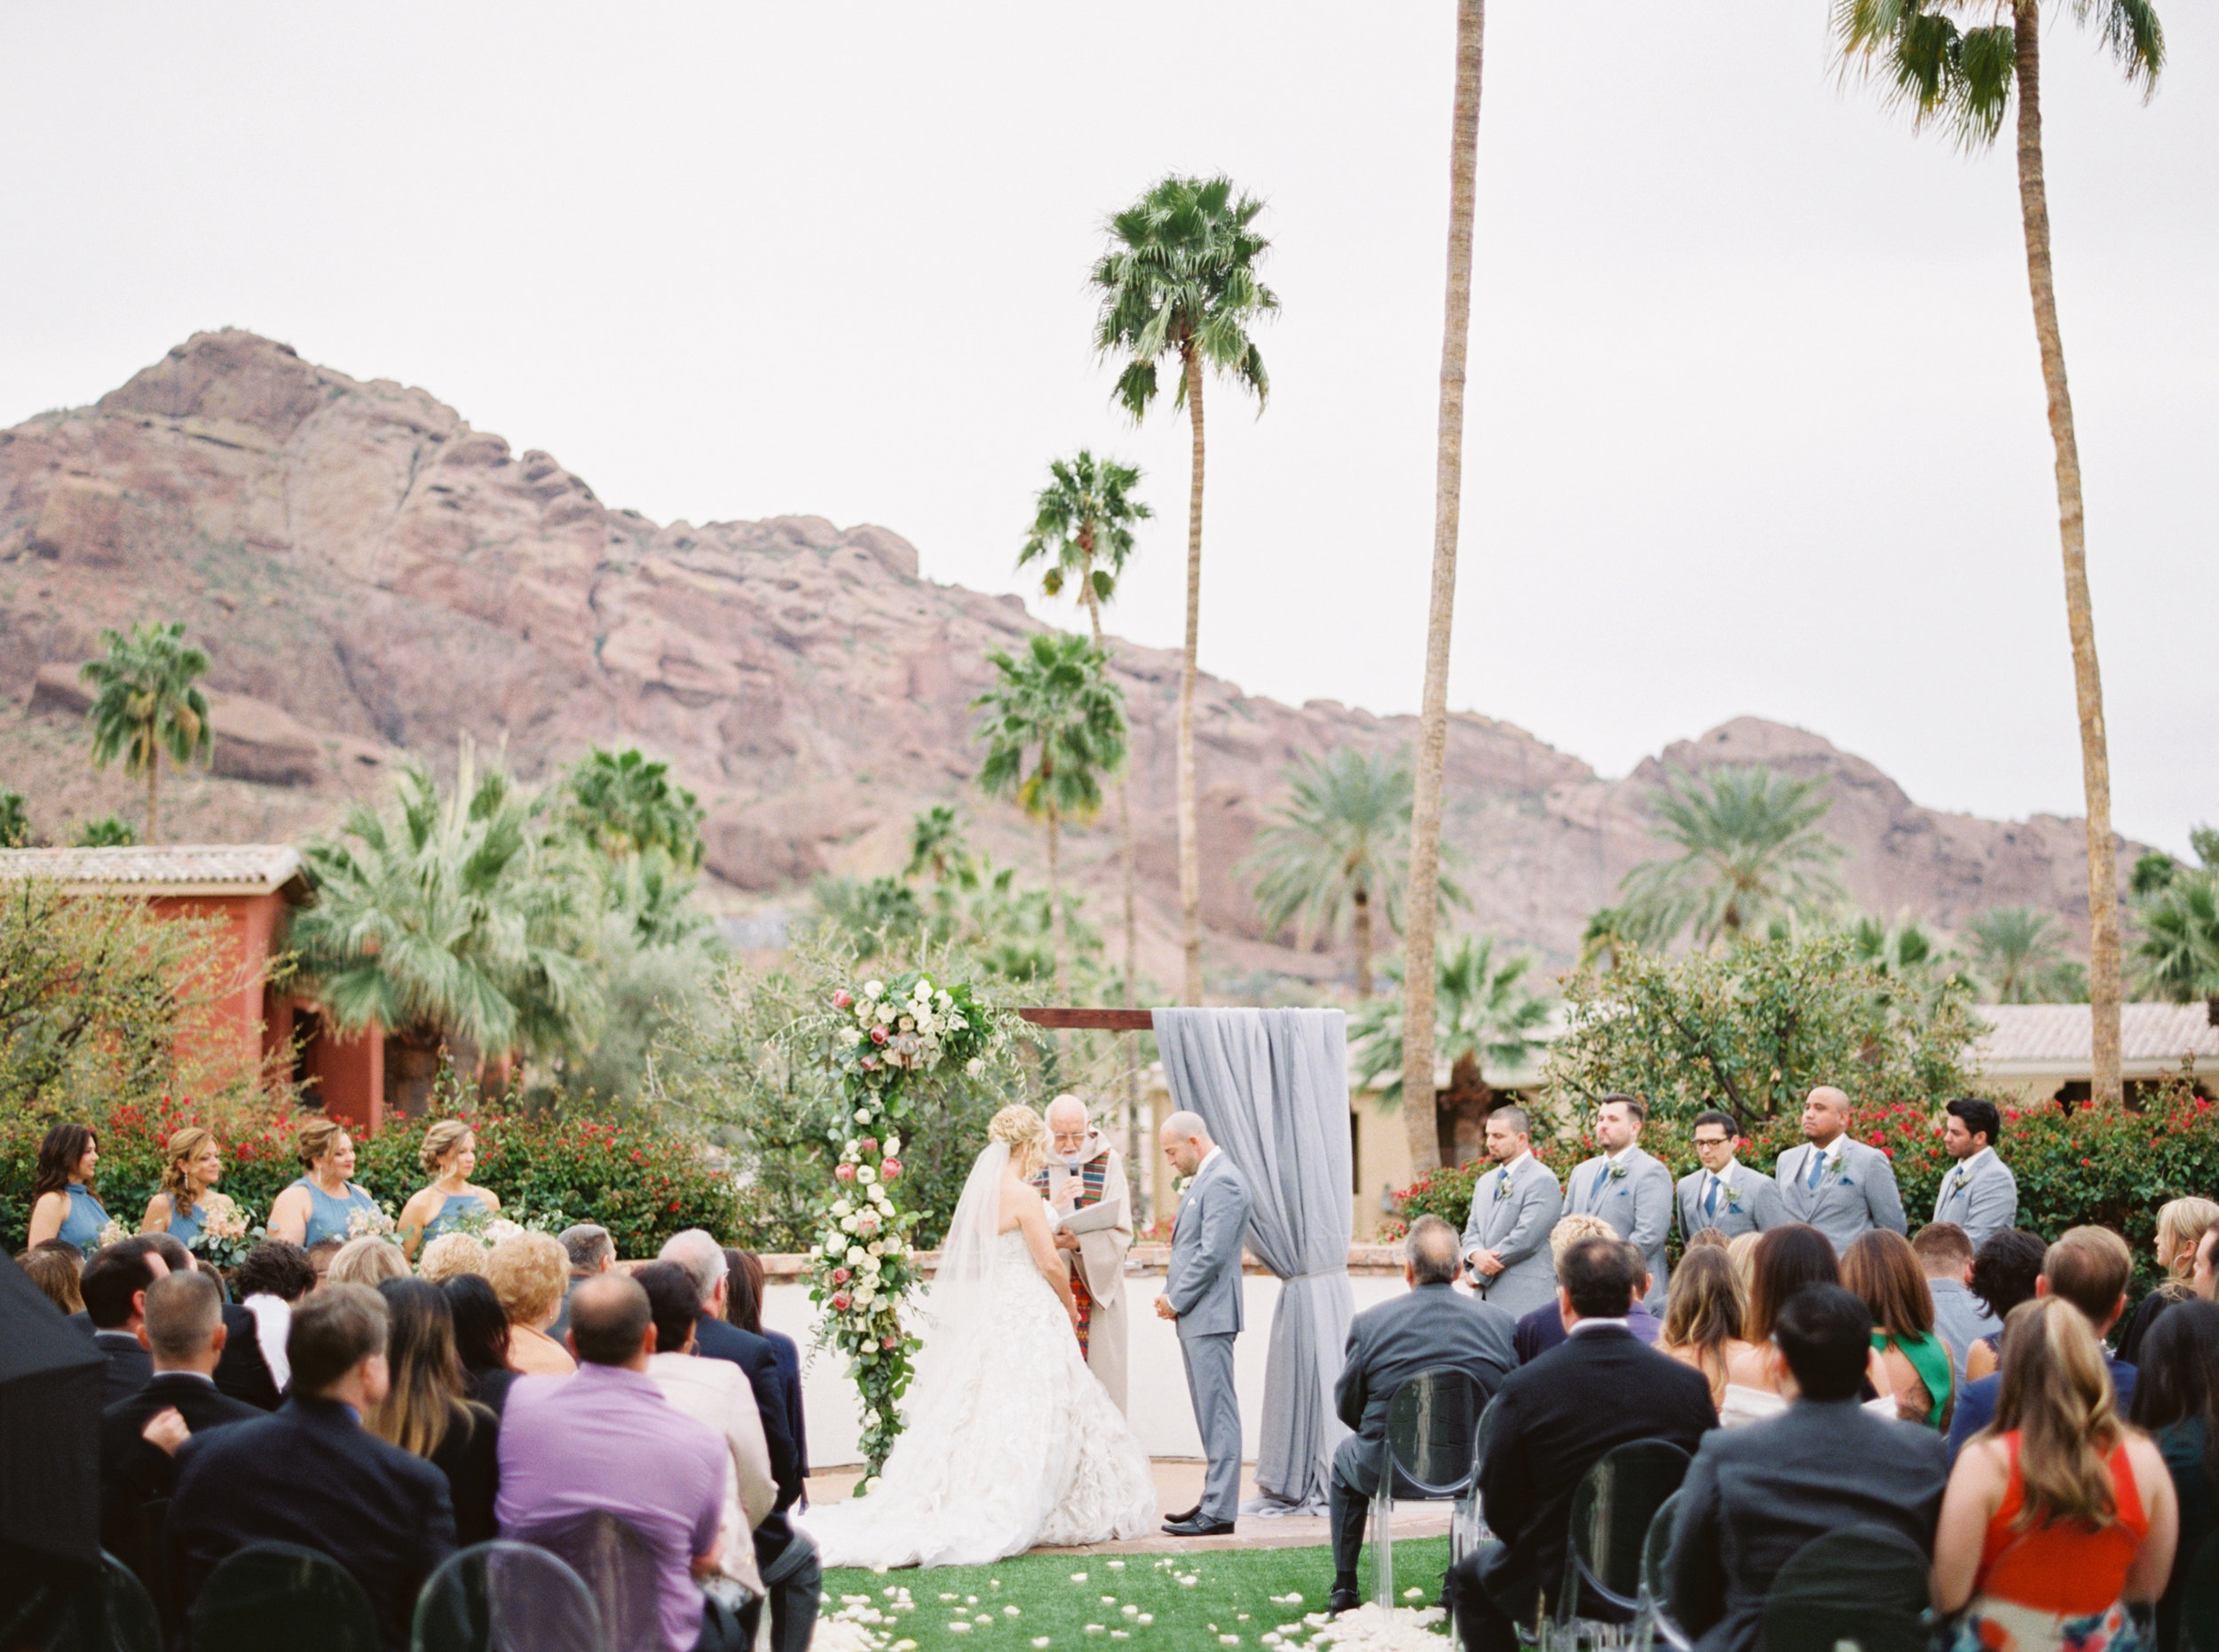 30 bride groom wedding ceremony outdoor wedding rain on wedding day camelback mountain view omni scottsdale montelucia wedding ceremony prayer Life Design Events photos by Melissa Jill Photography.jpg